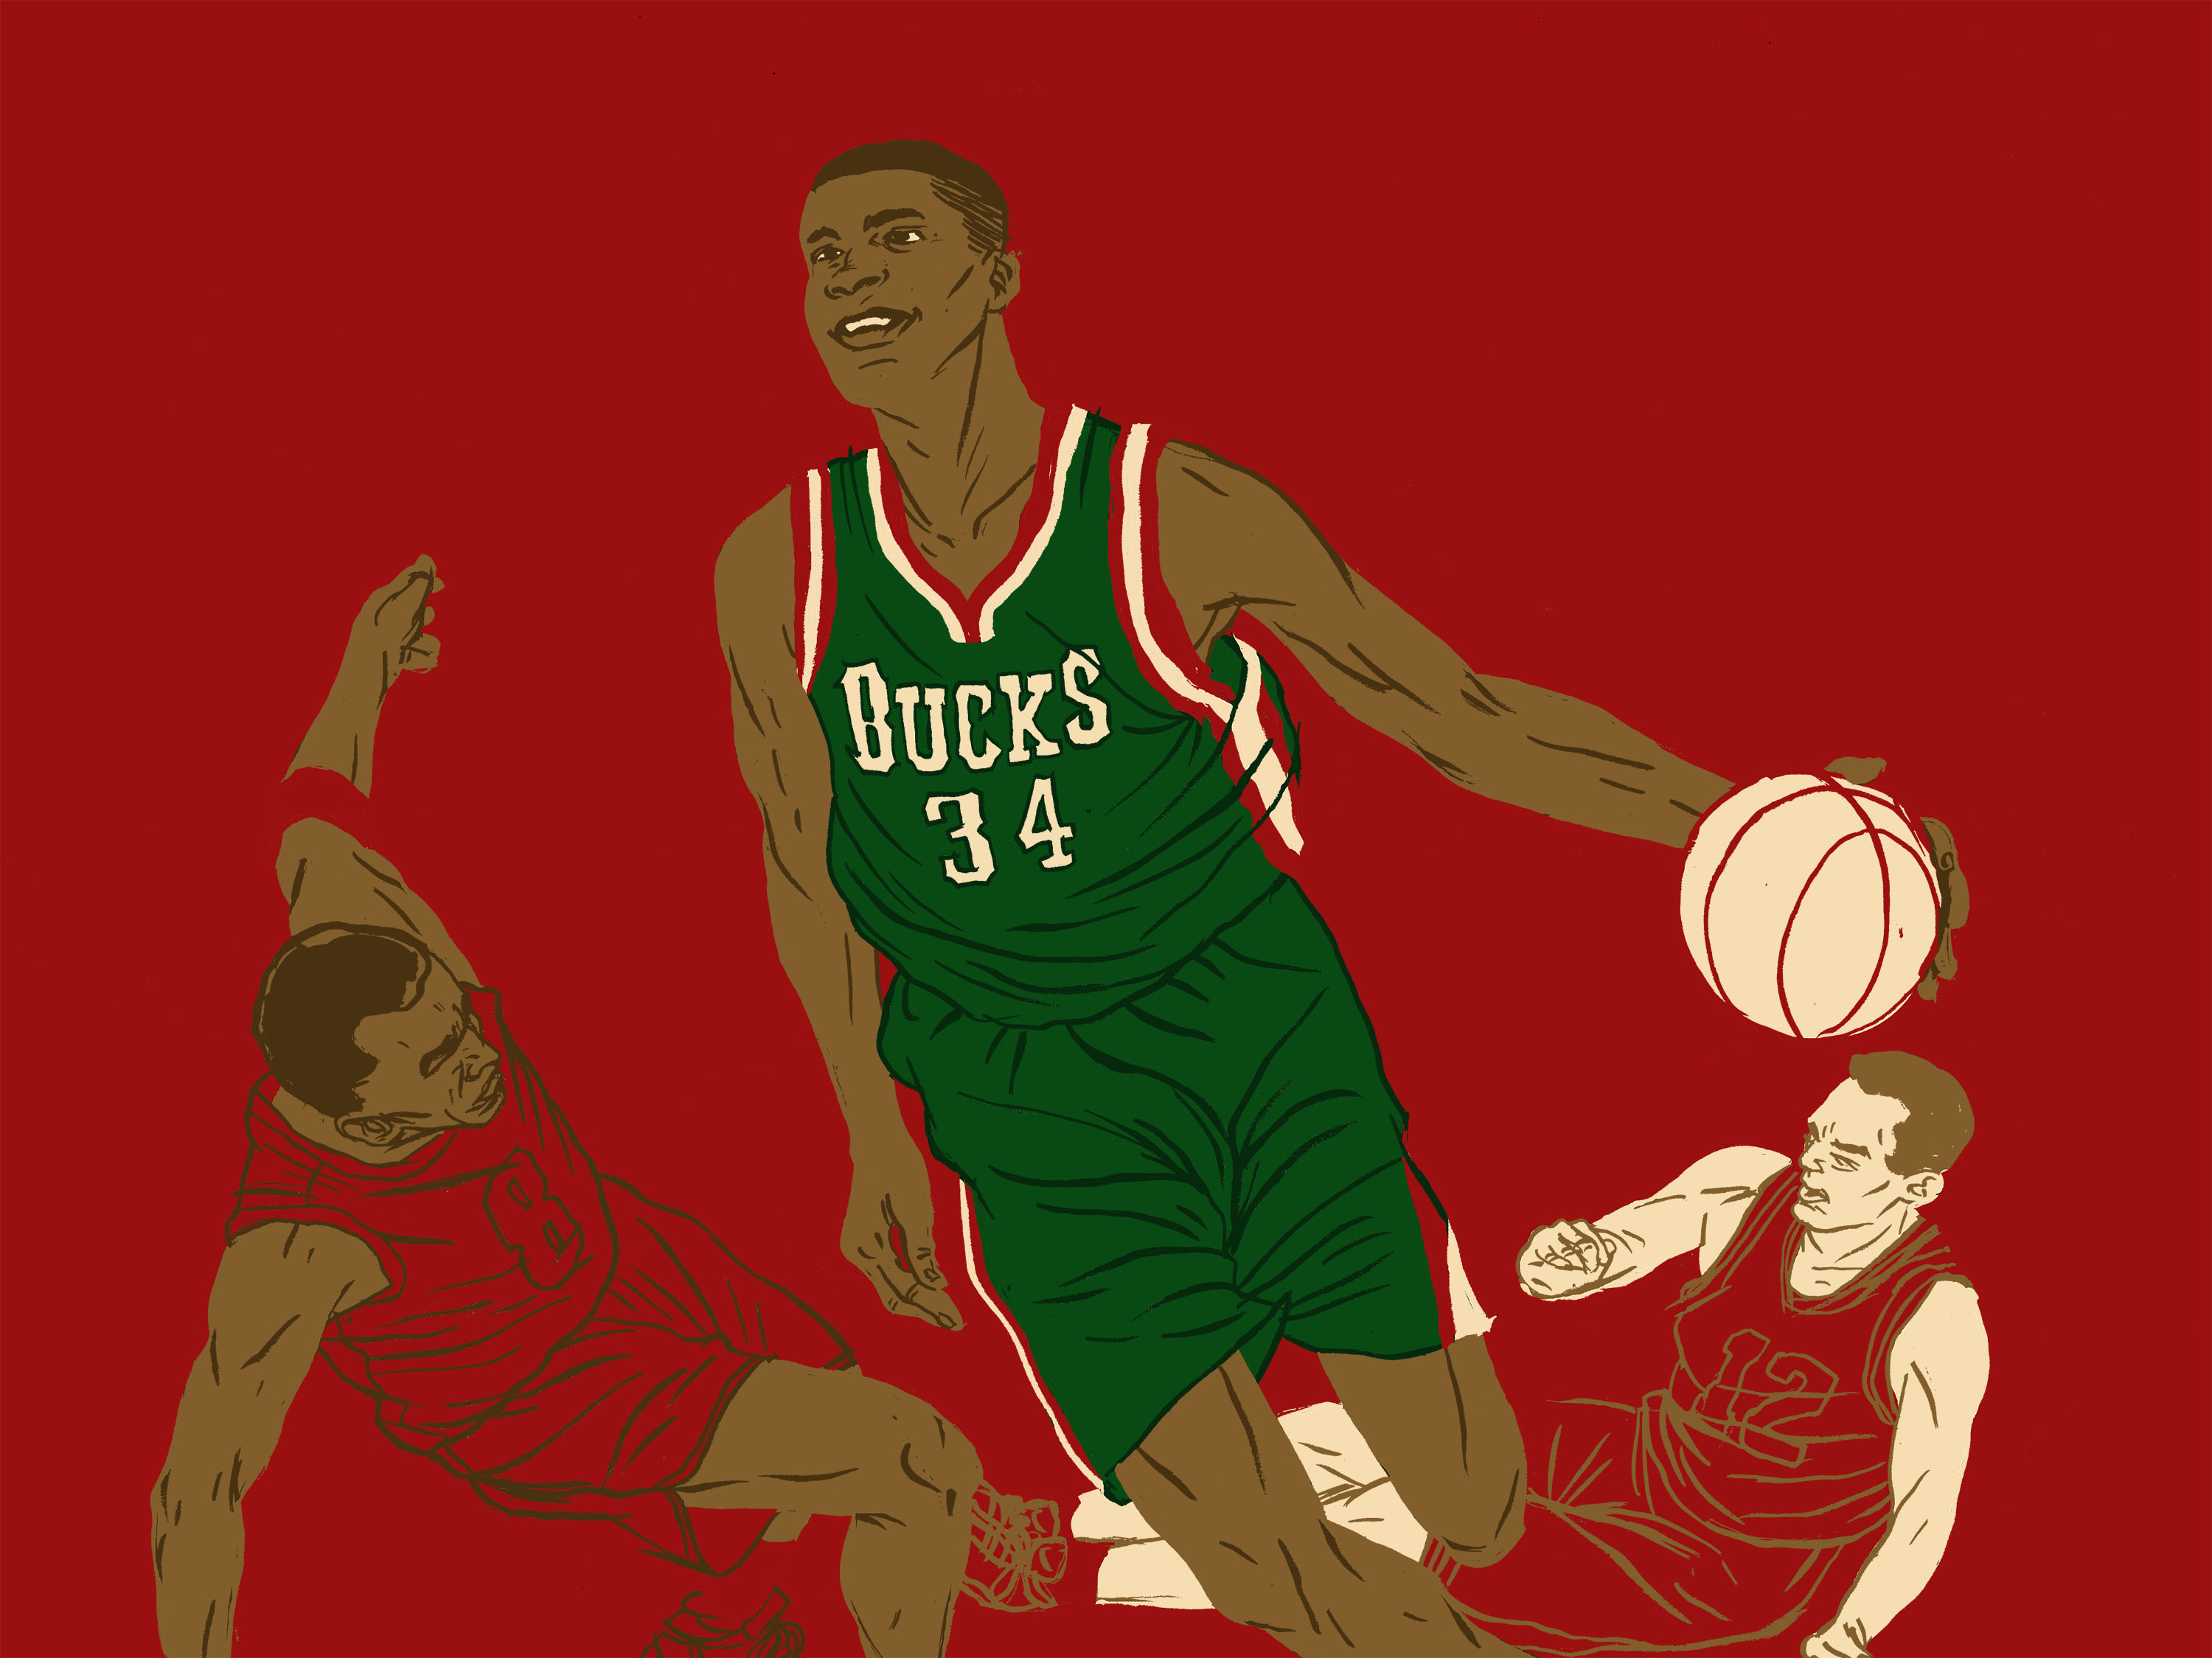 Giannis Antetokounmpo is reinventing the game